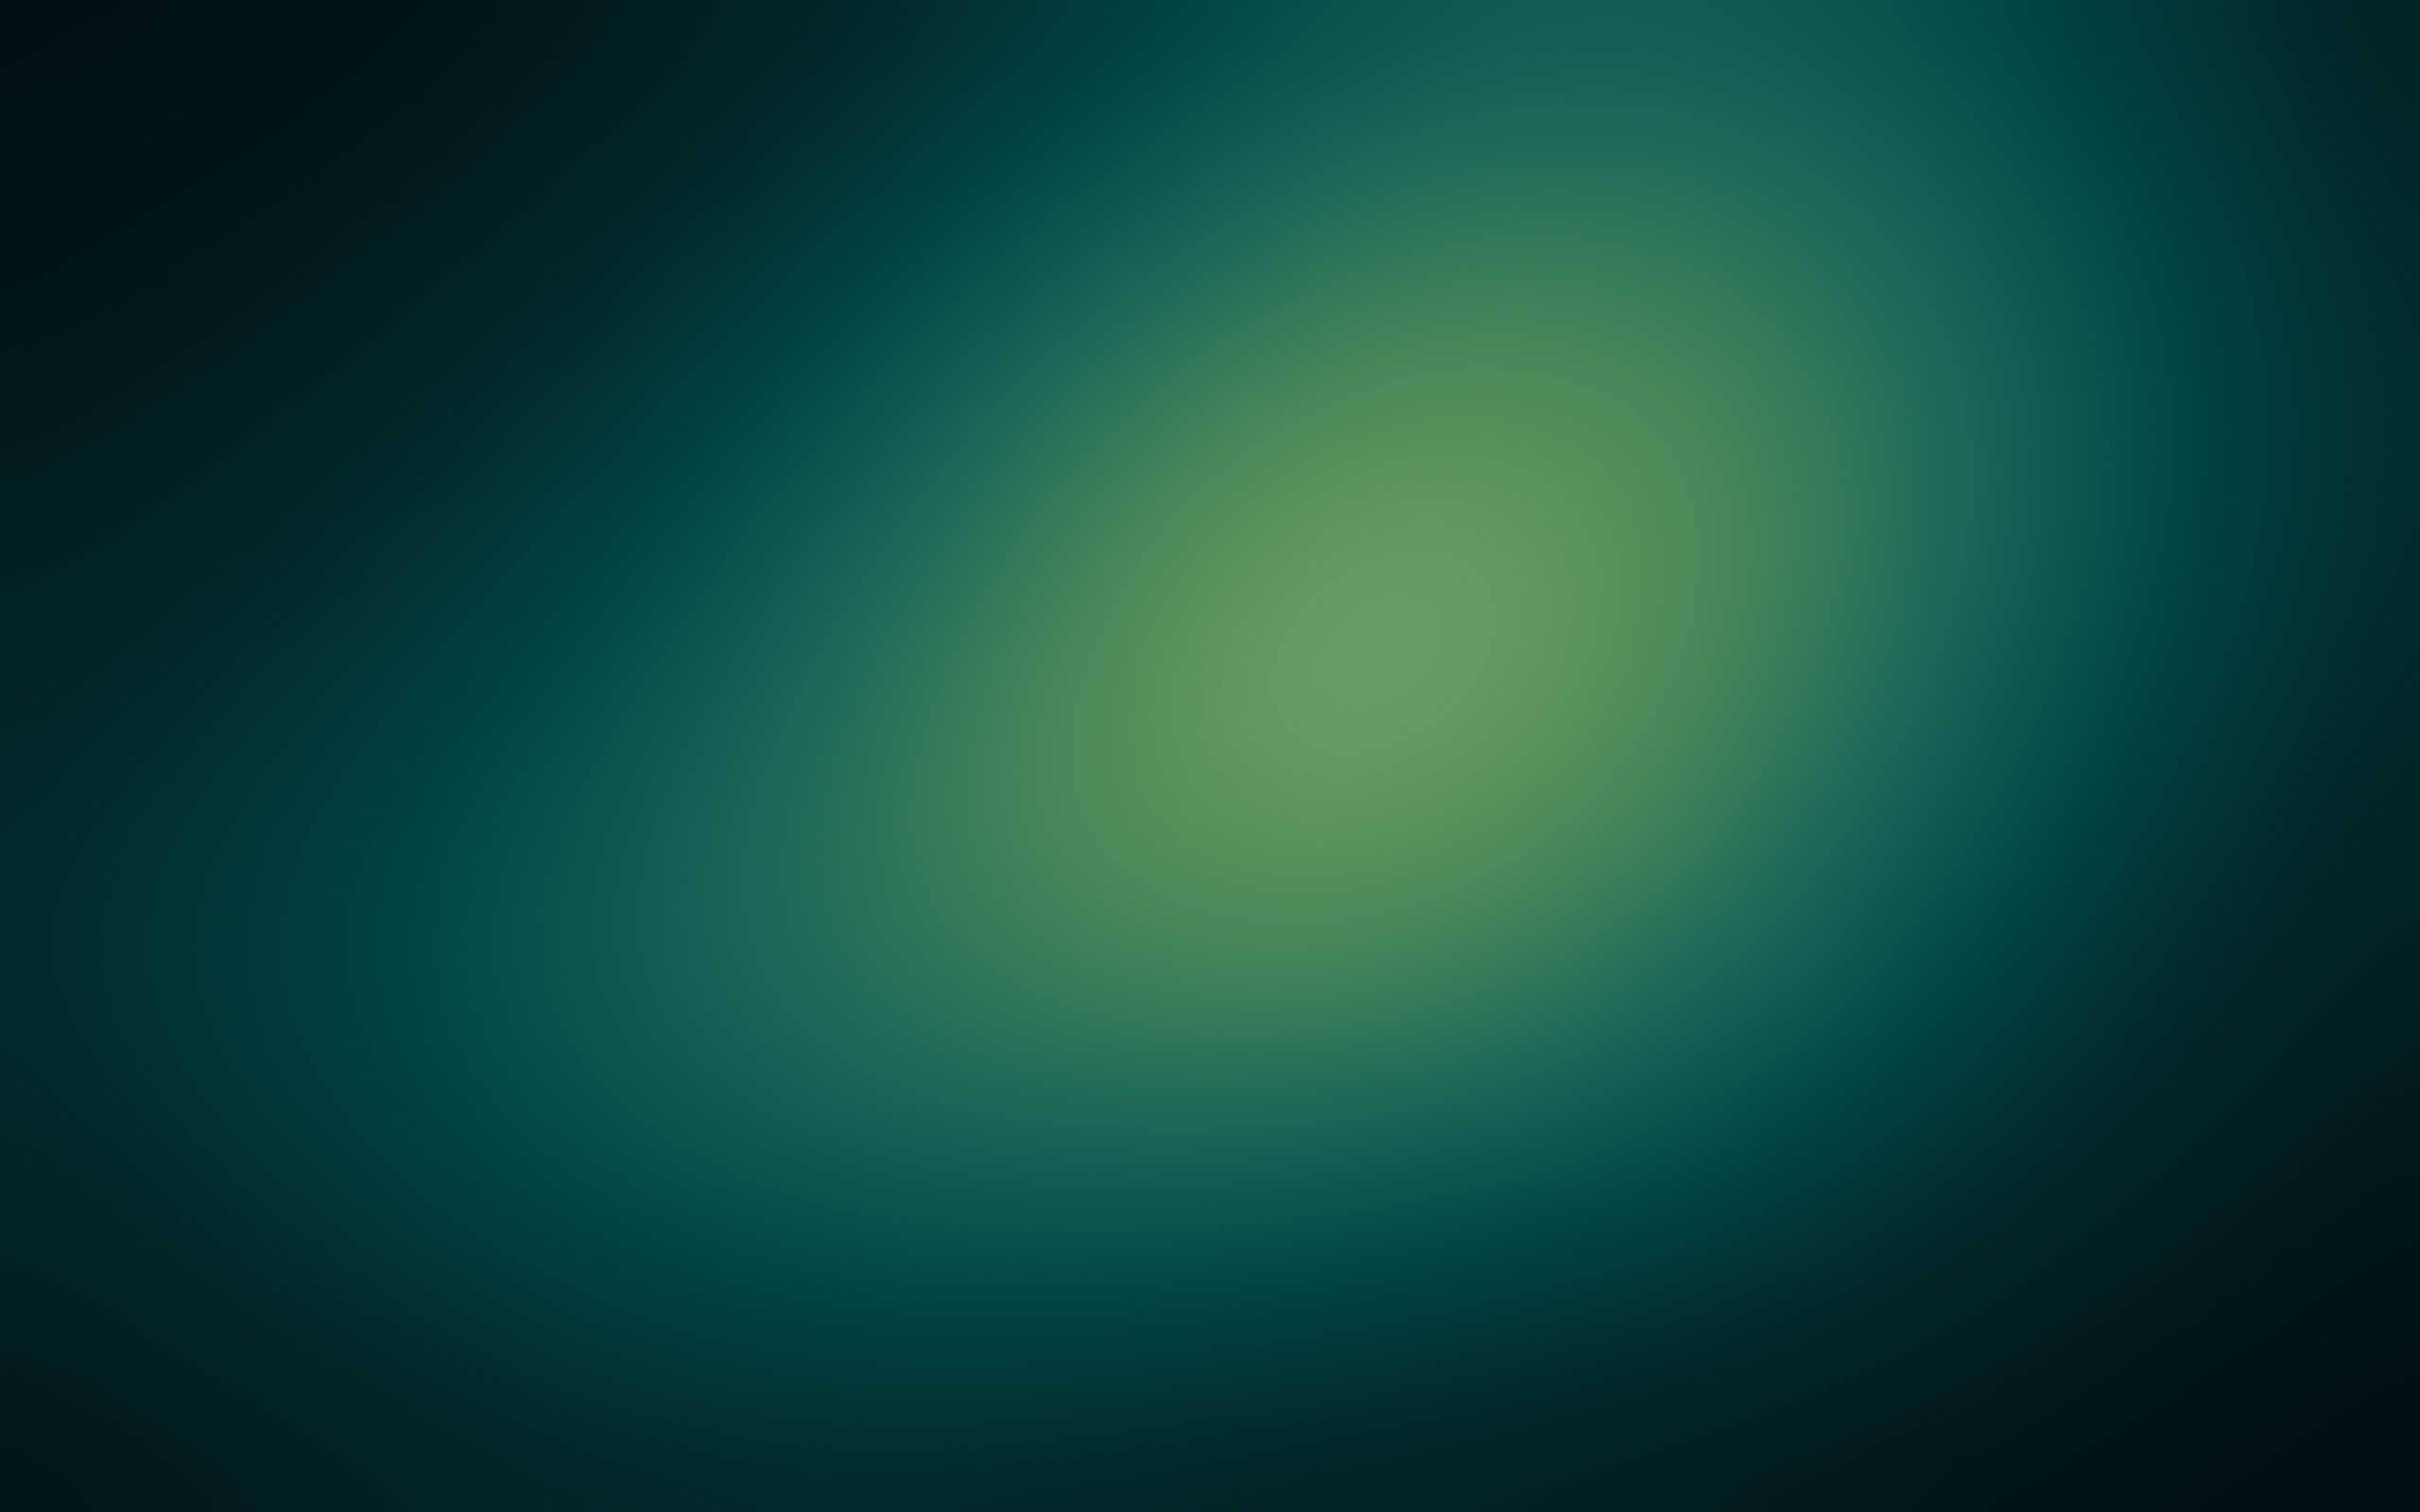 Light blue green wallpaper wallpapersafari - Dark blue wallpaper hd for android ...